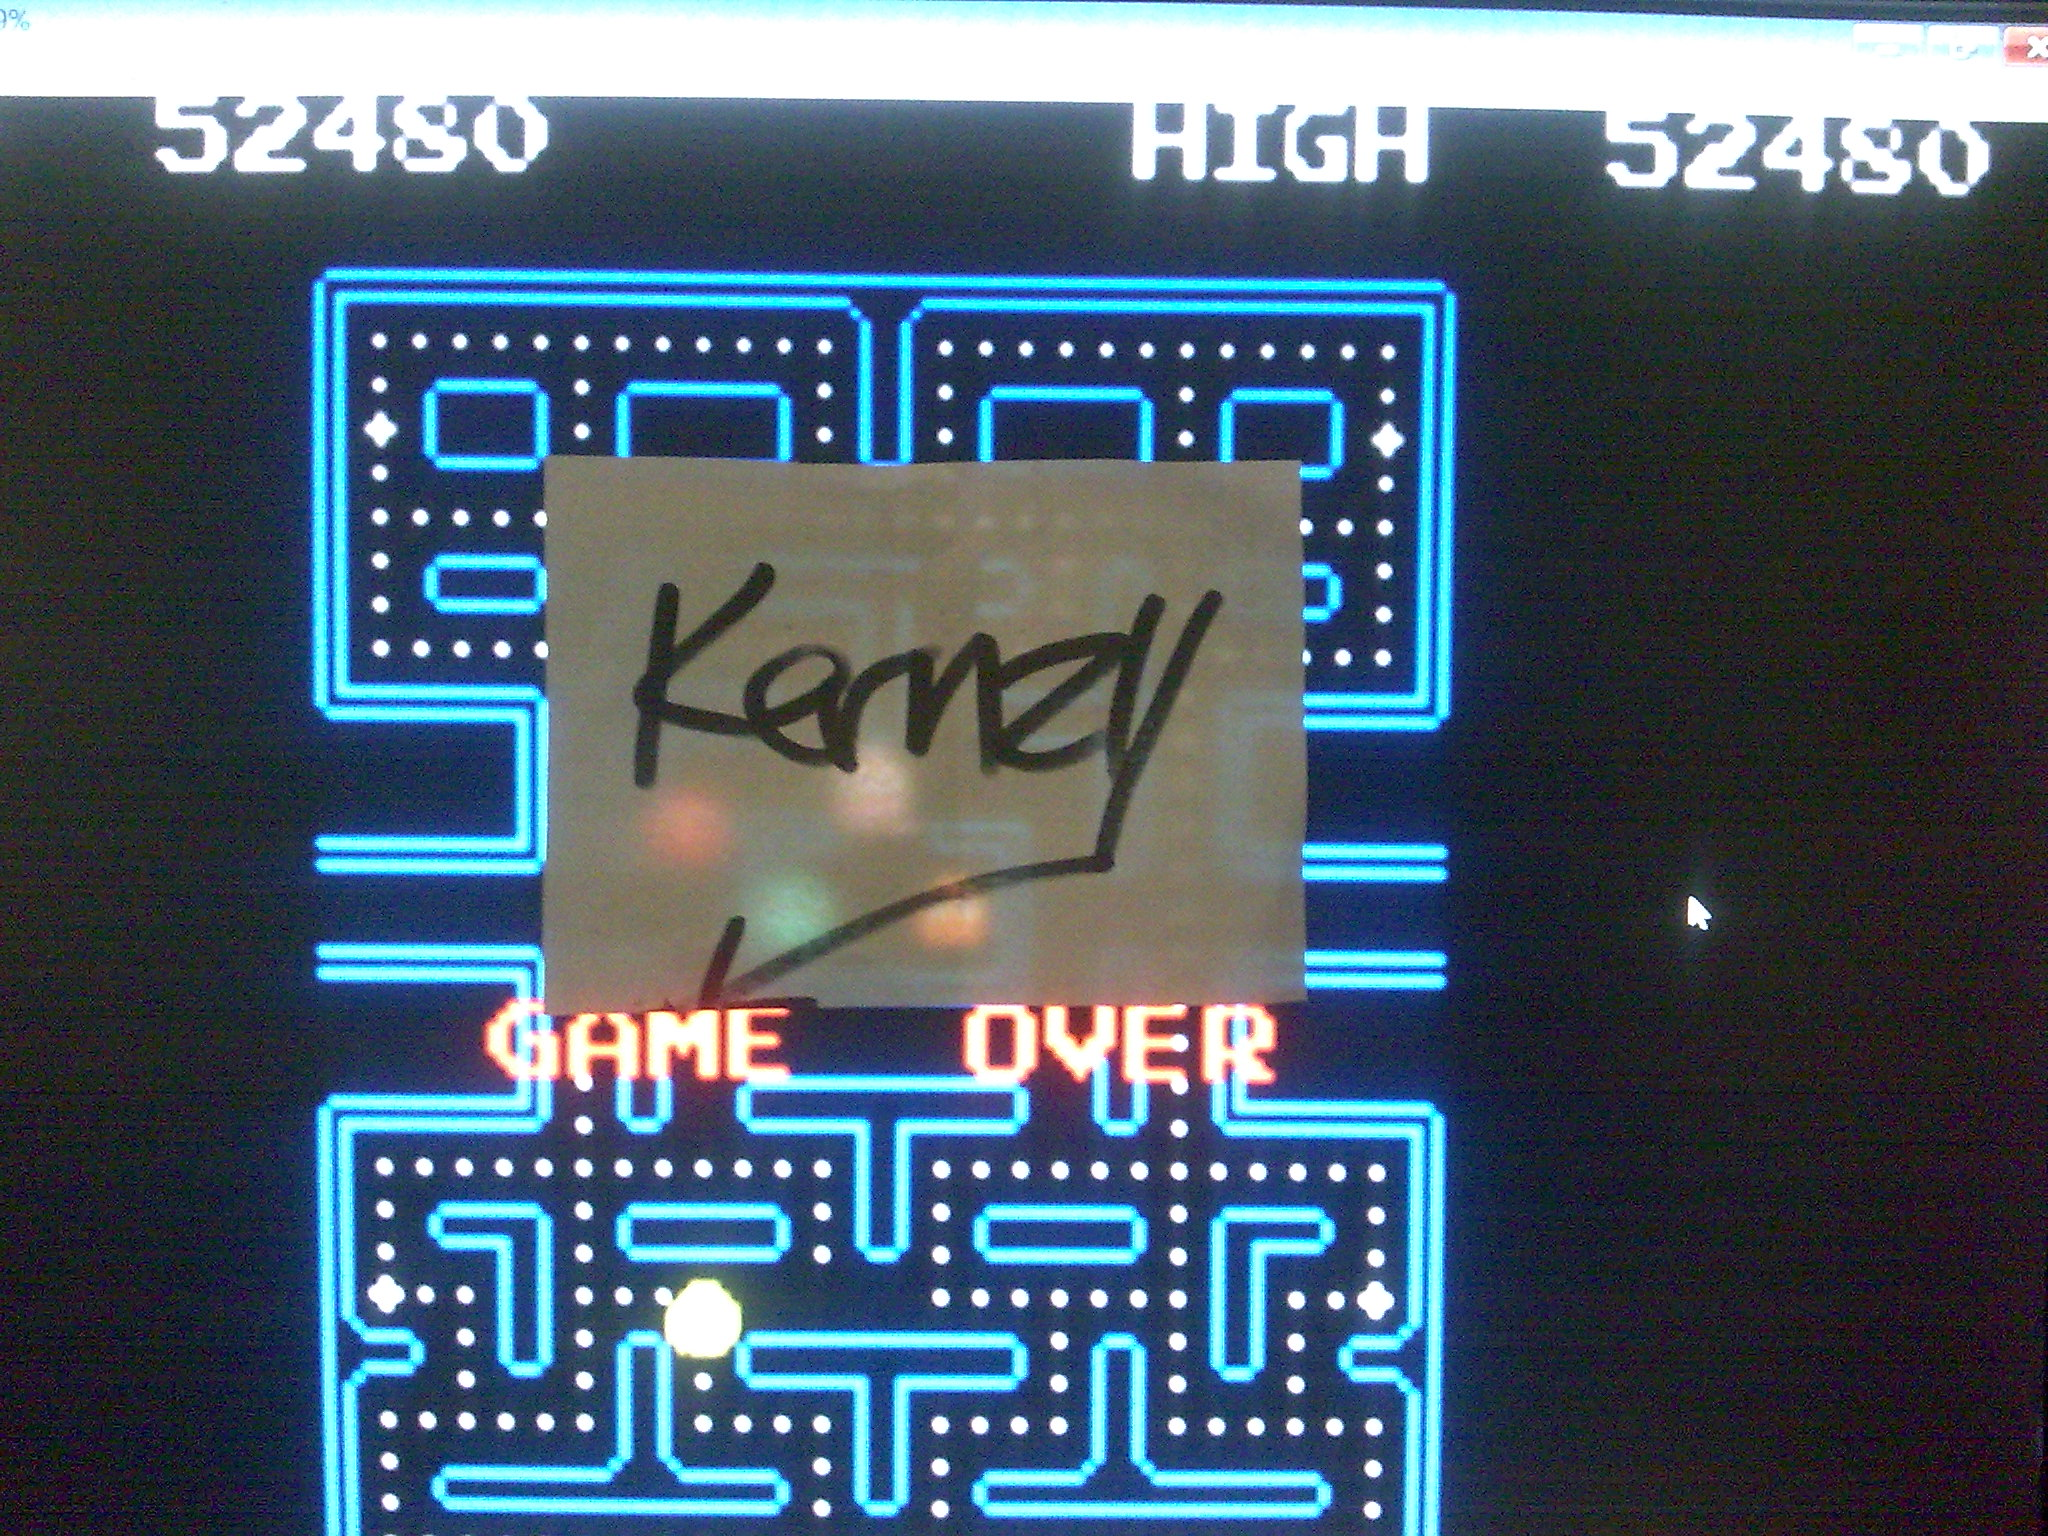 kernzy: Pac-Man Collection: Pac-Man (GBA Emulated) 52,480 points on 2014-08-28 07:44:06